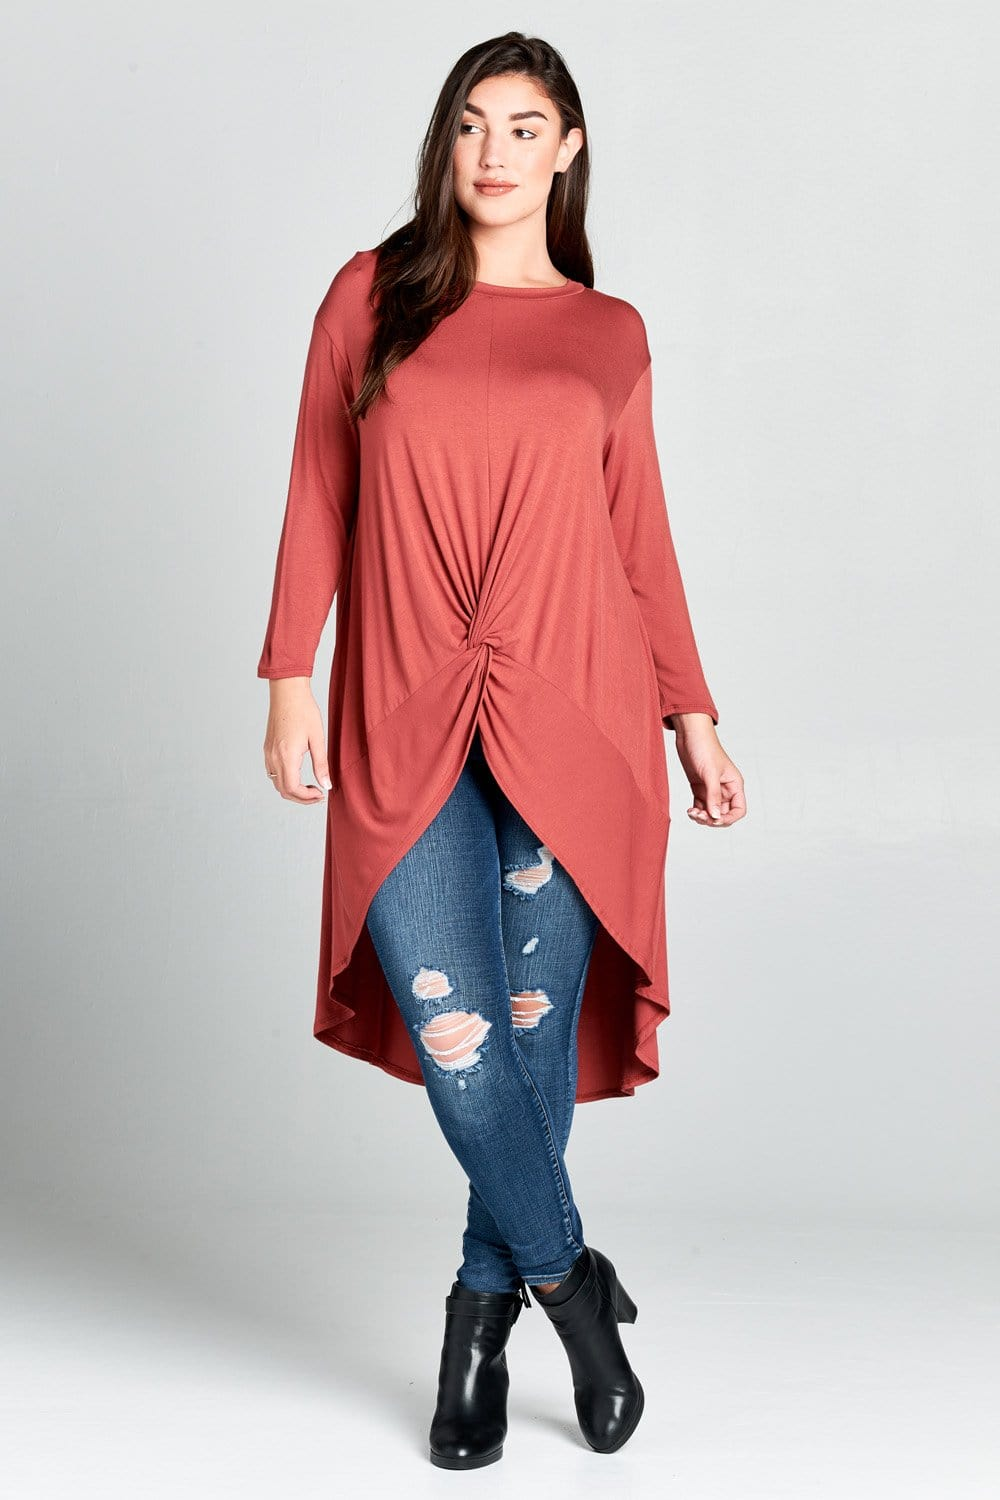 Farrah Marsala Top - Curvy Clothes Australia - Afterpay Laybuy & Humm Online